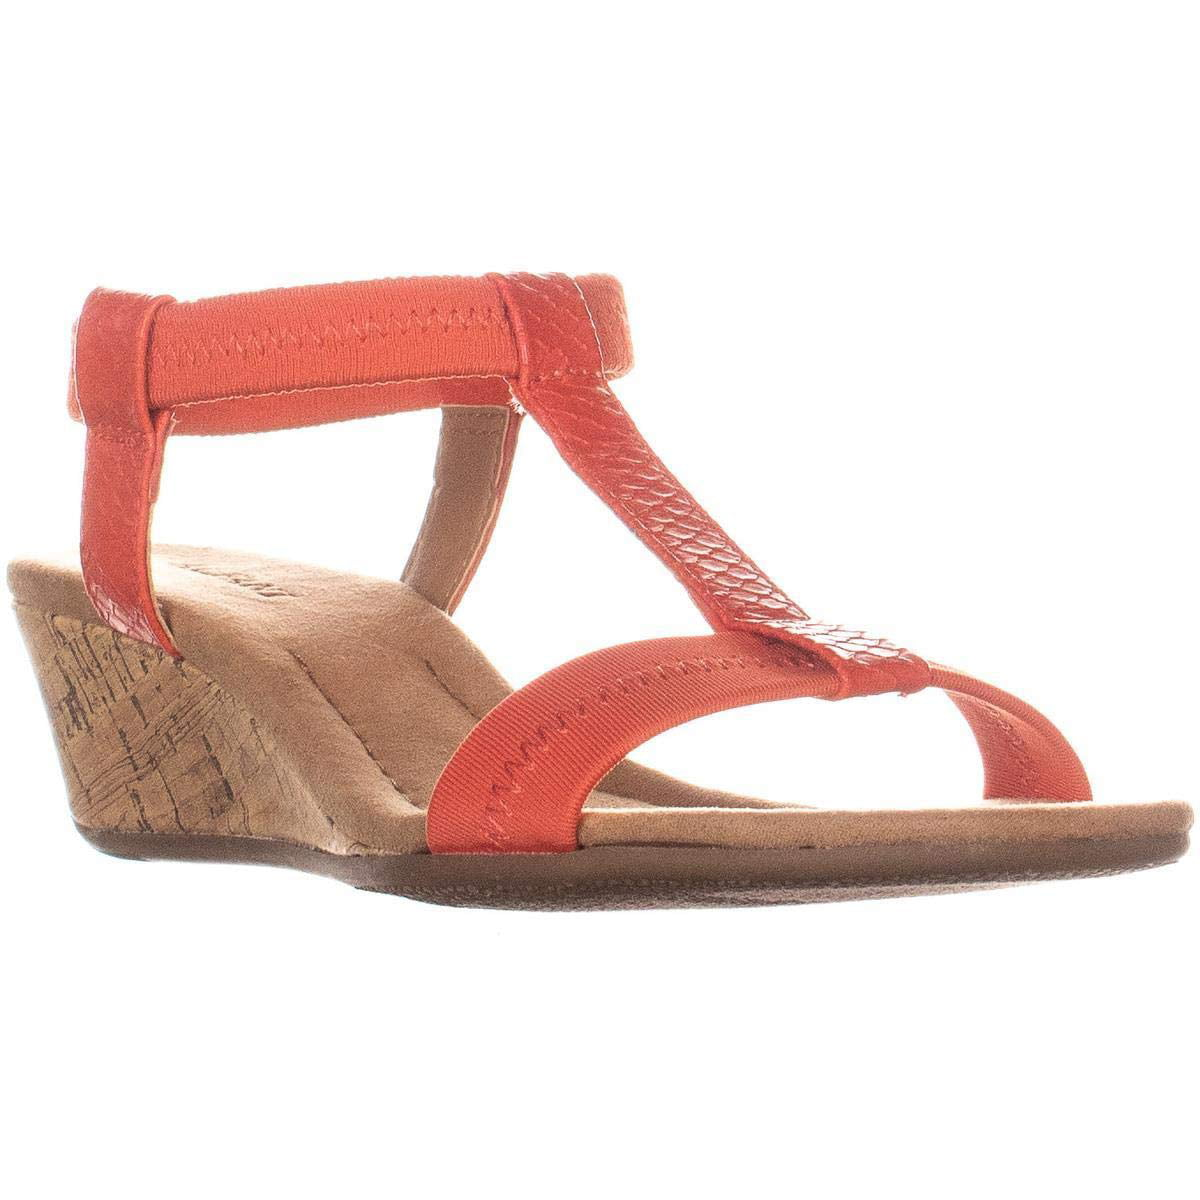 P J Masks Red Open Toe Beach Holiday Sandals Clogs Mules Slip On Various Sizes